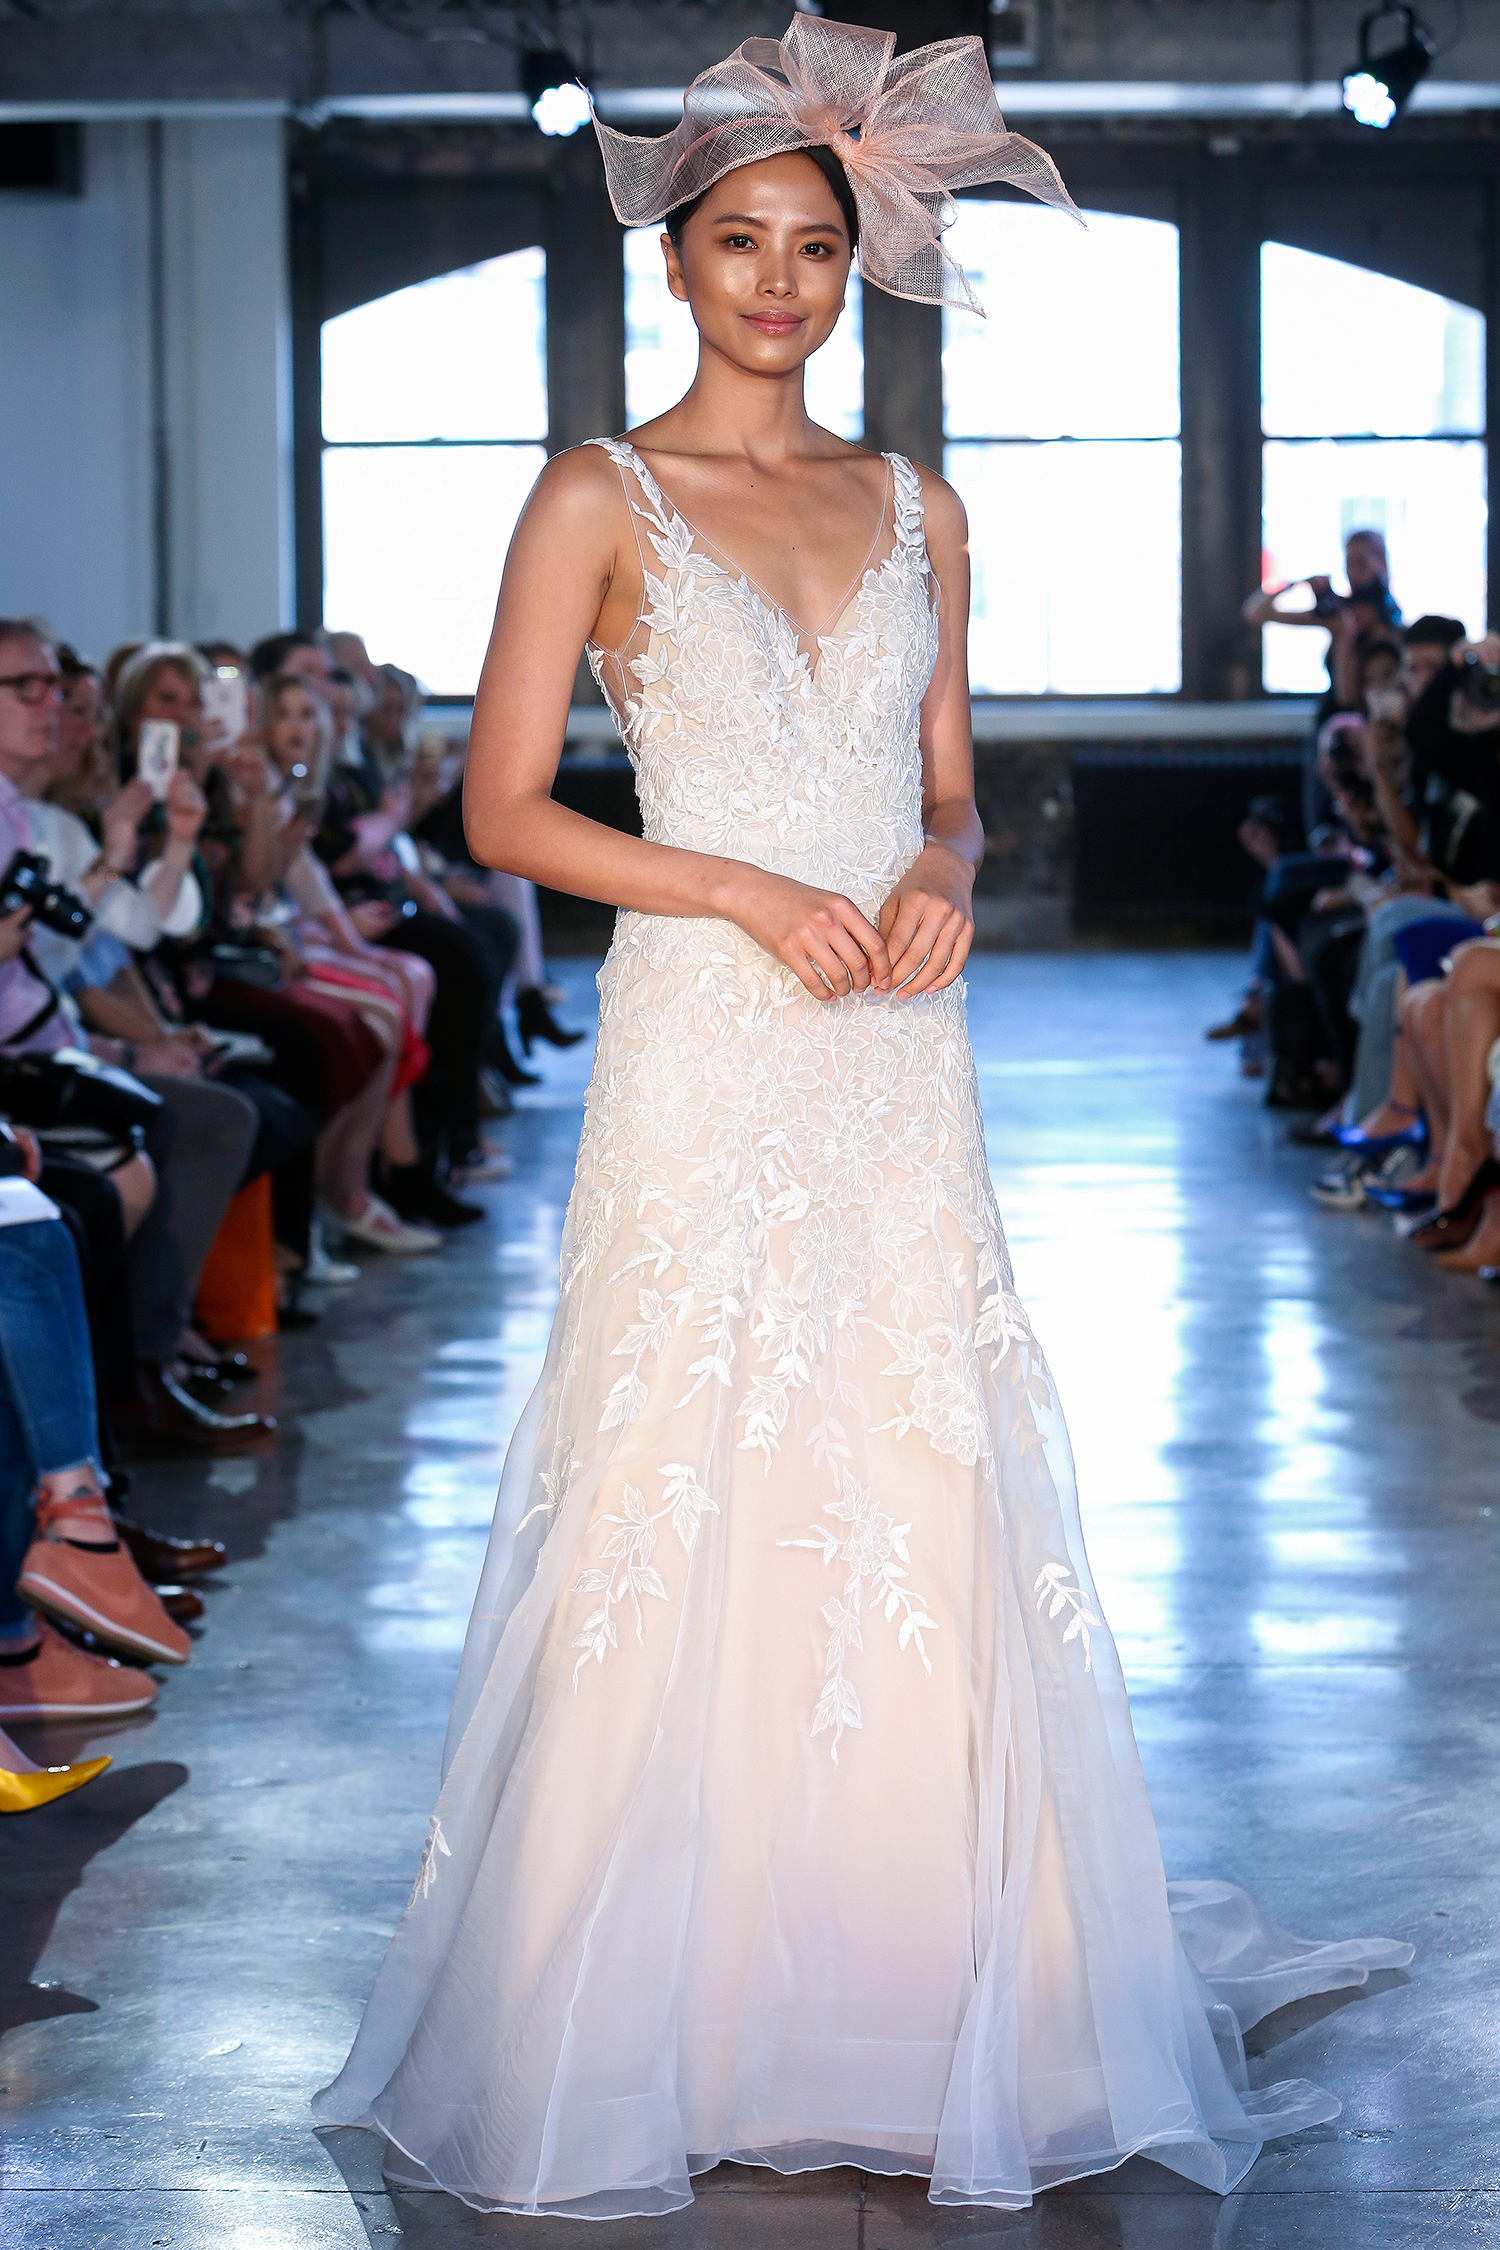 watters wedding dress spring 2019 v-neck a-line with embroidery